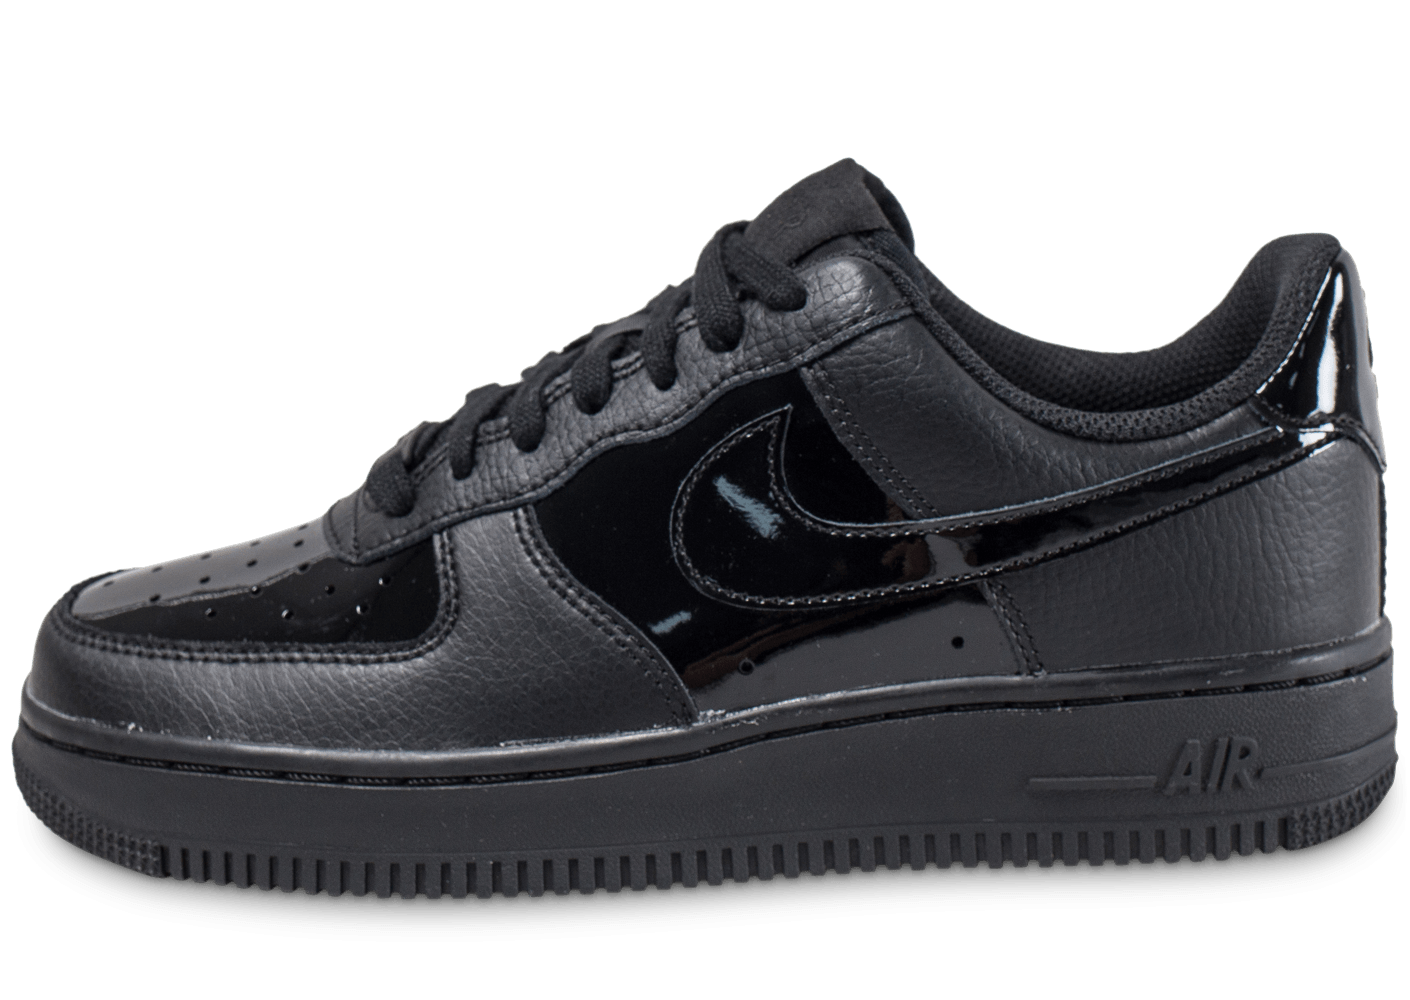 Chaussures Nike Air Force 1 noires femme nOt0q